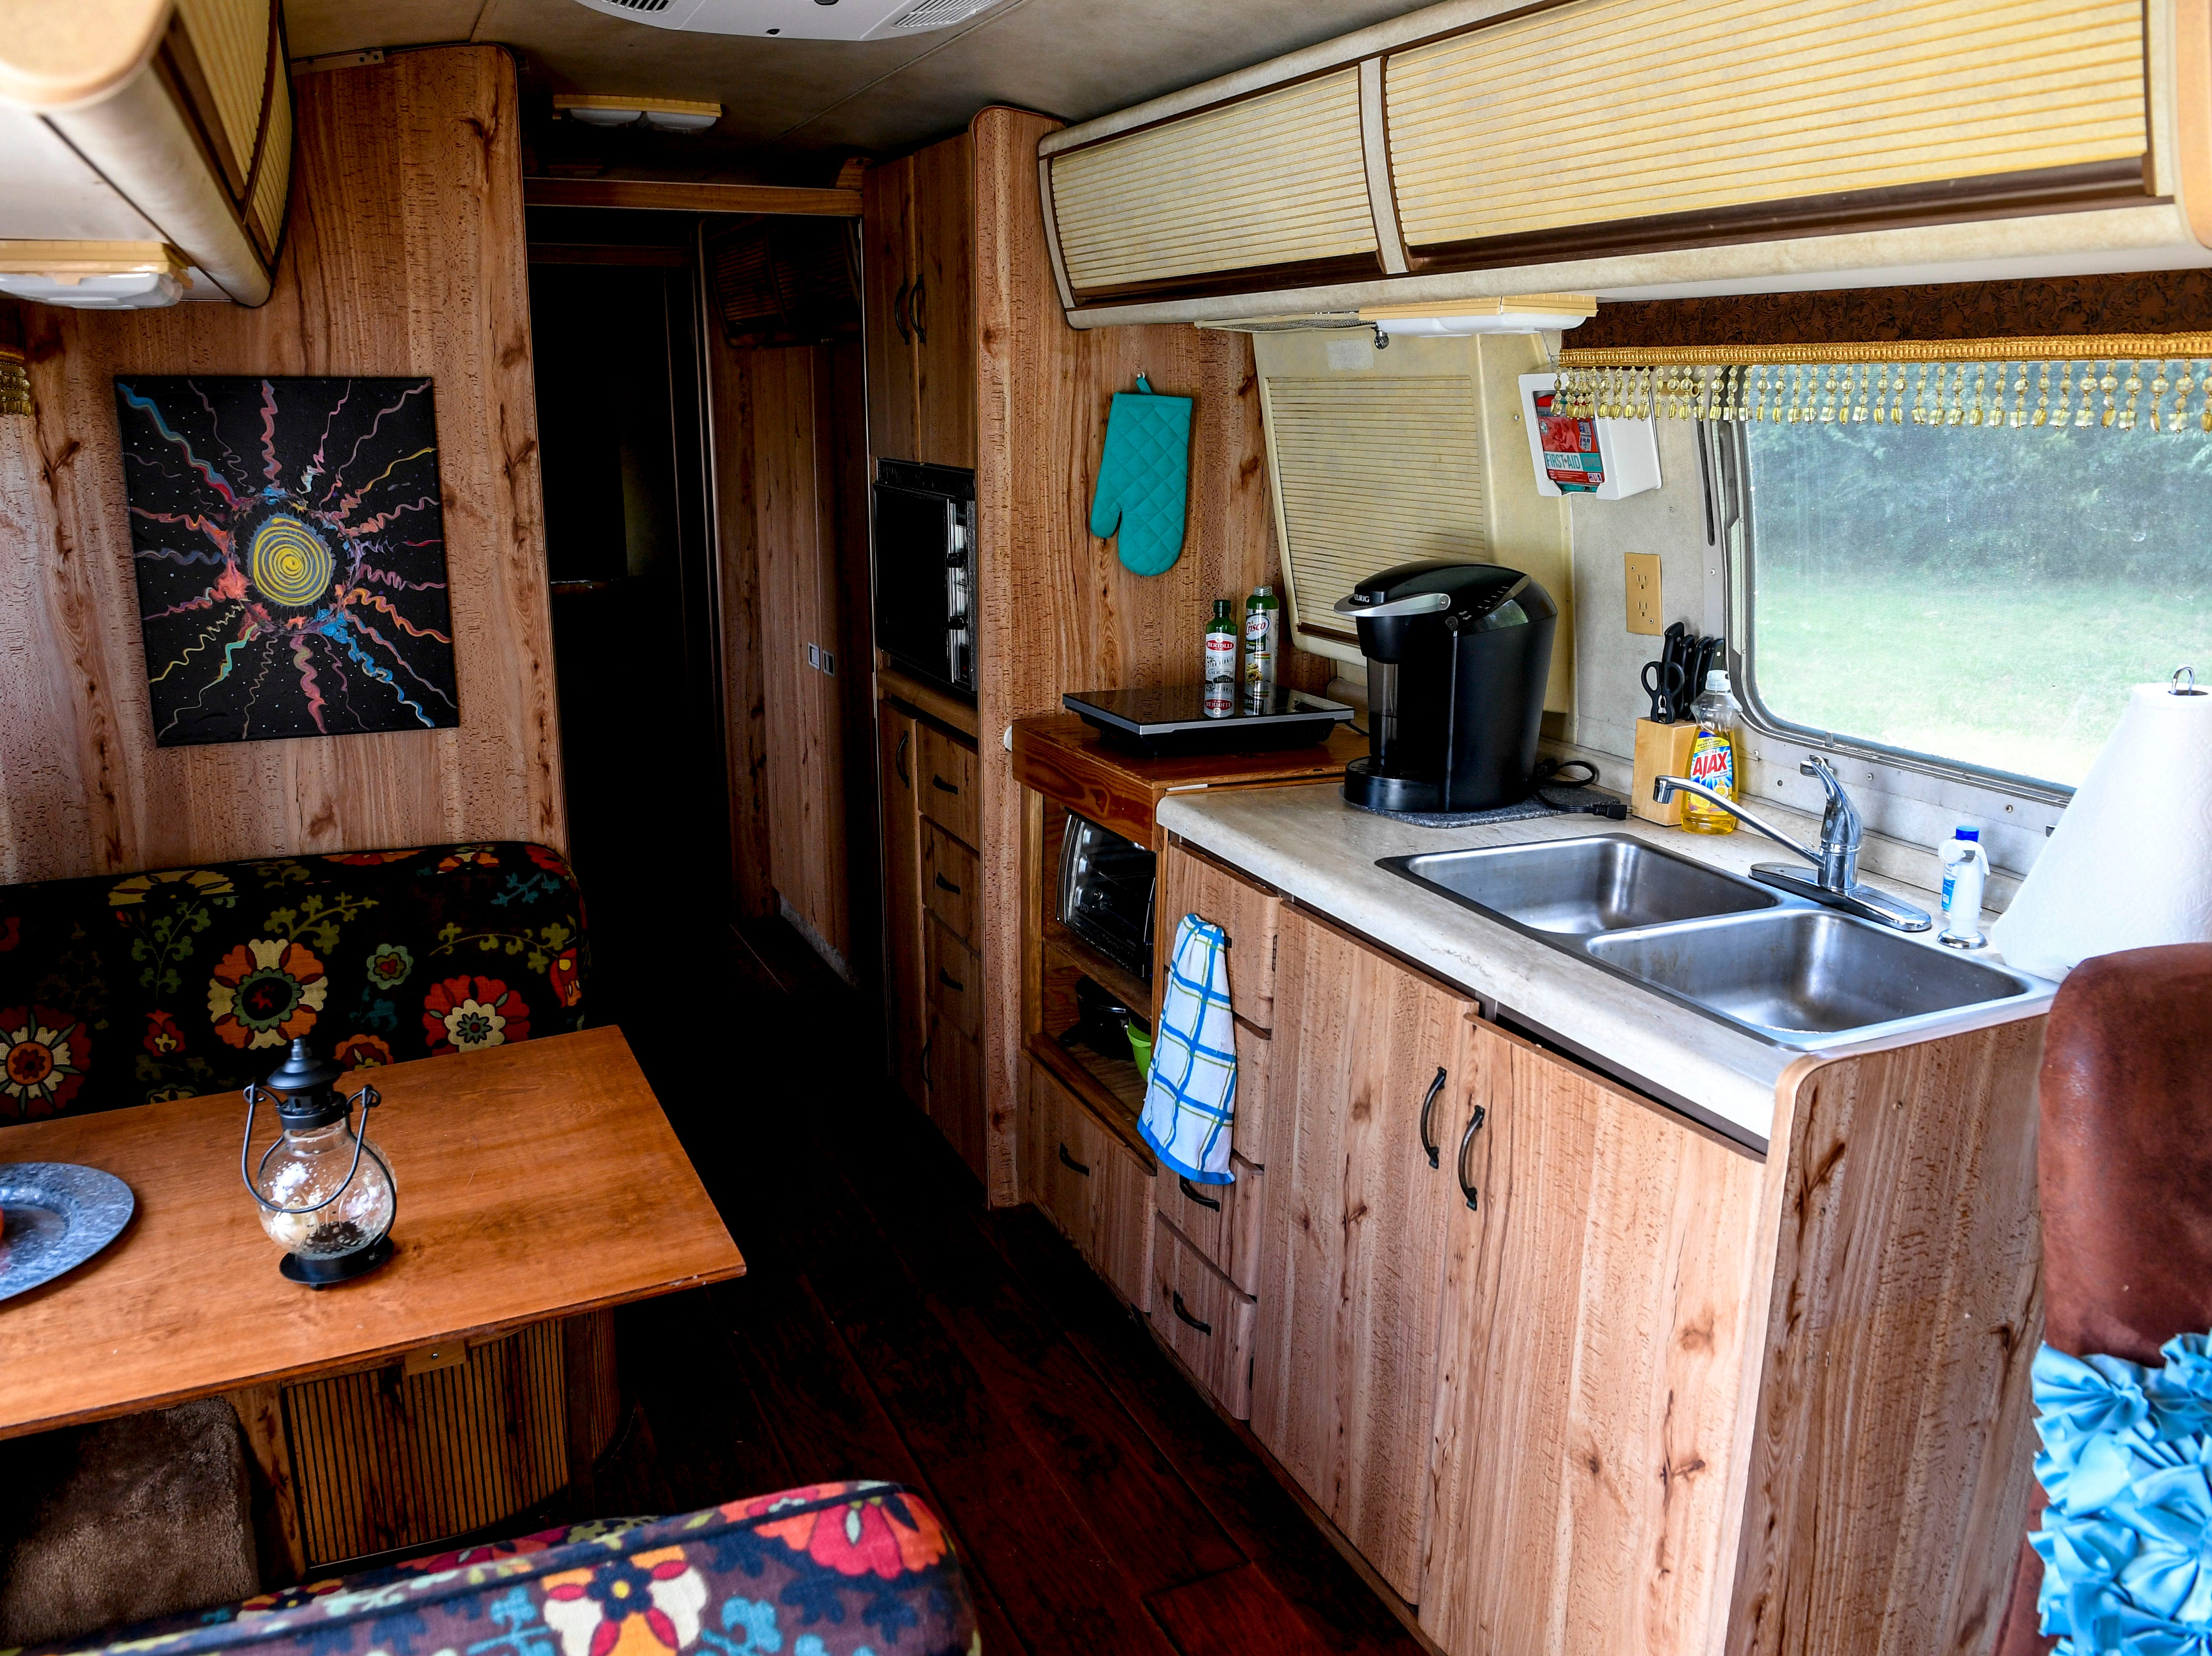 The inside of one of the Pitoni's Airstream trailers can be seen at Stillwaters Farm in Henderson, Tenn., on Monday, Nov. 5, 2018.